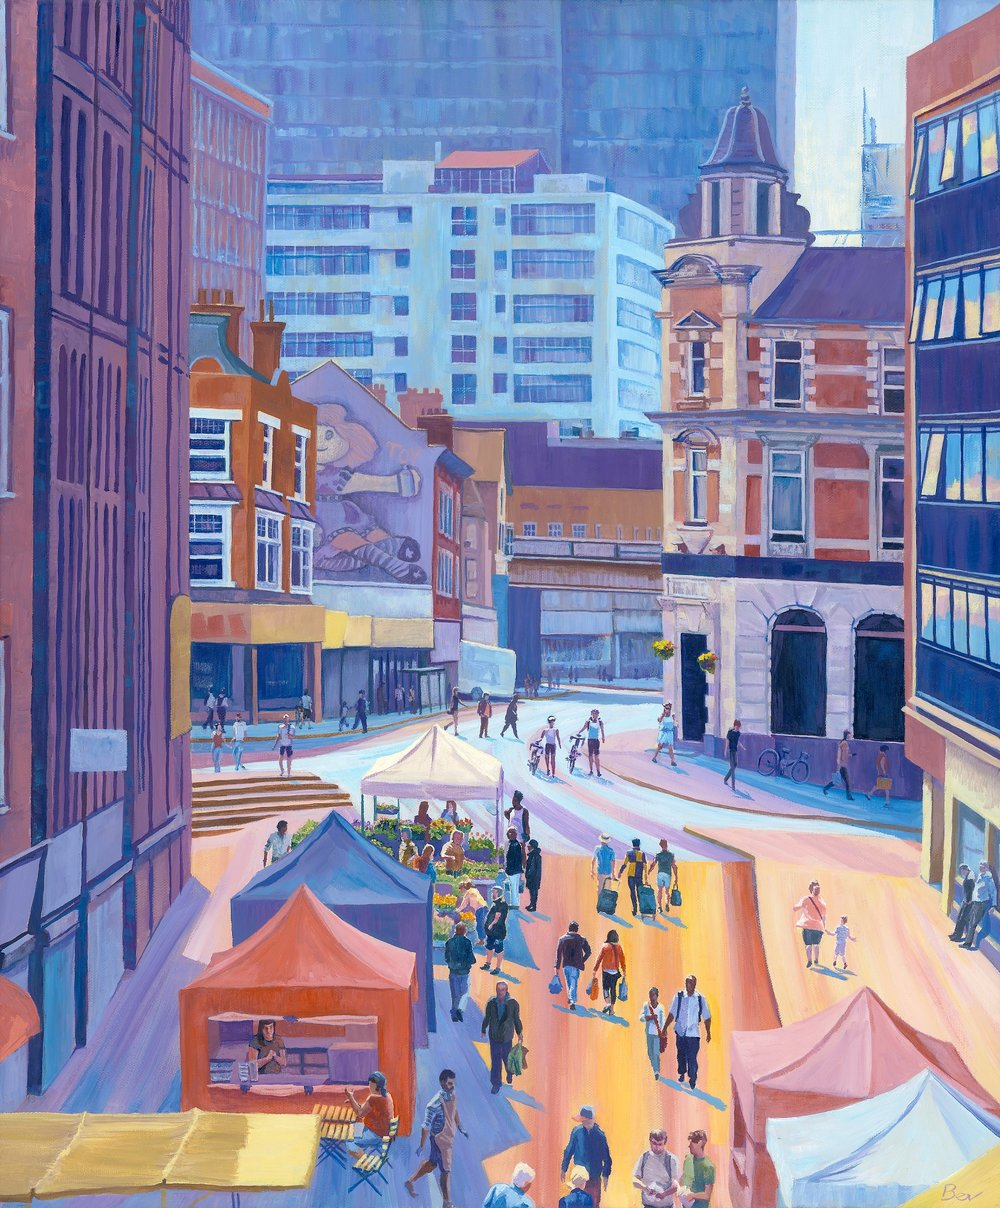 Market in Sunshine Acrylic on canvas | 55 x 65 cm £900